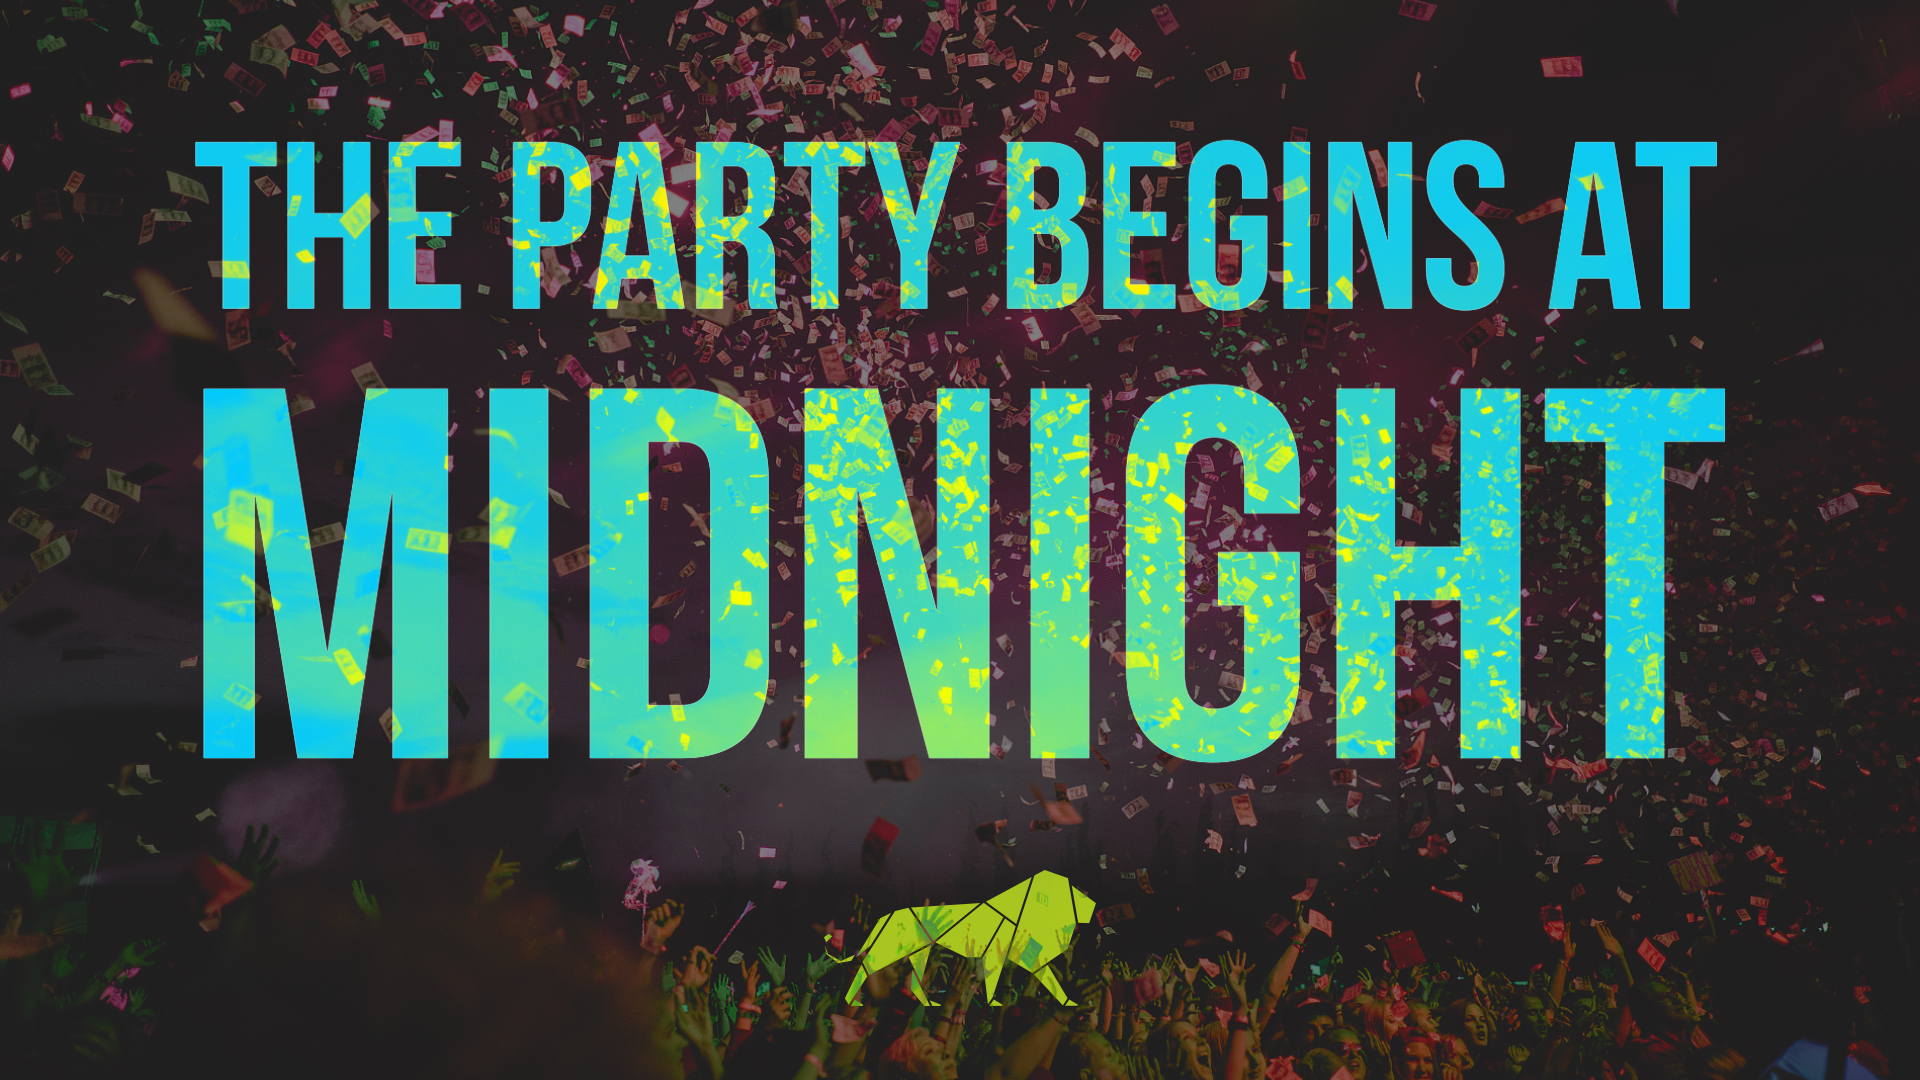 The Party Begin At Midnight.jpg